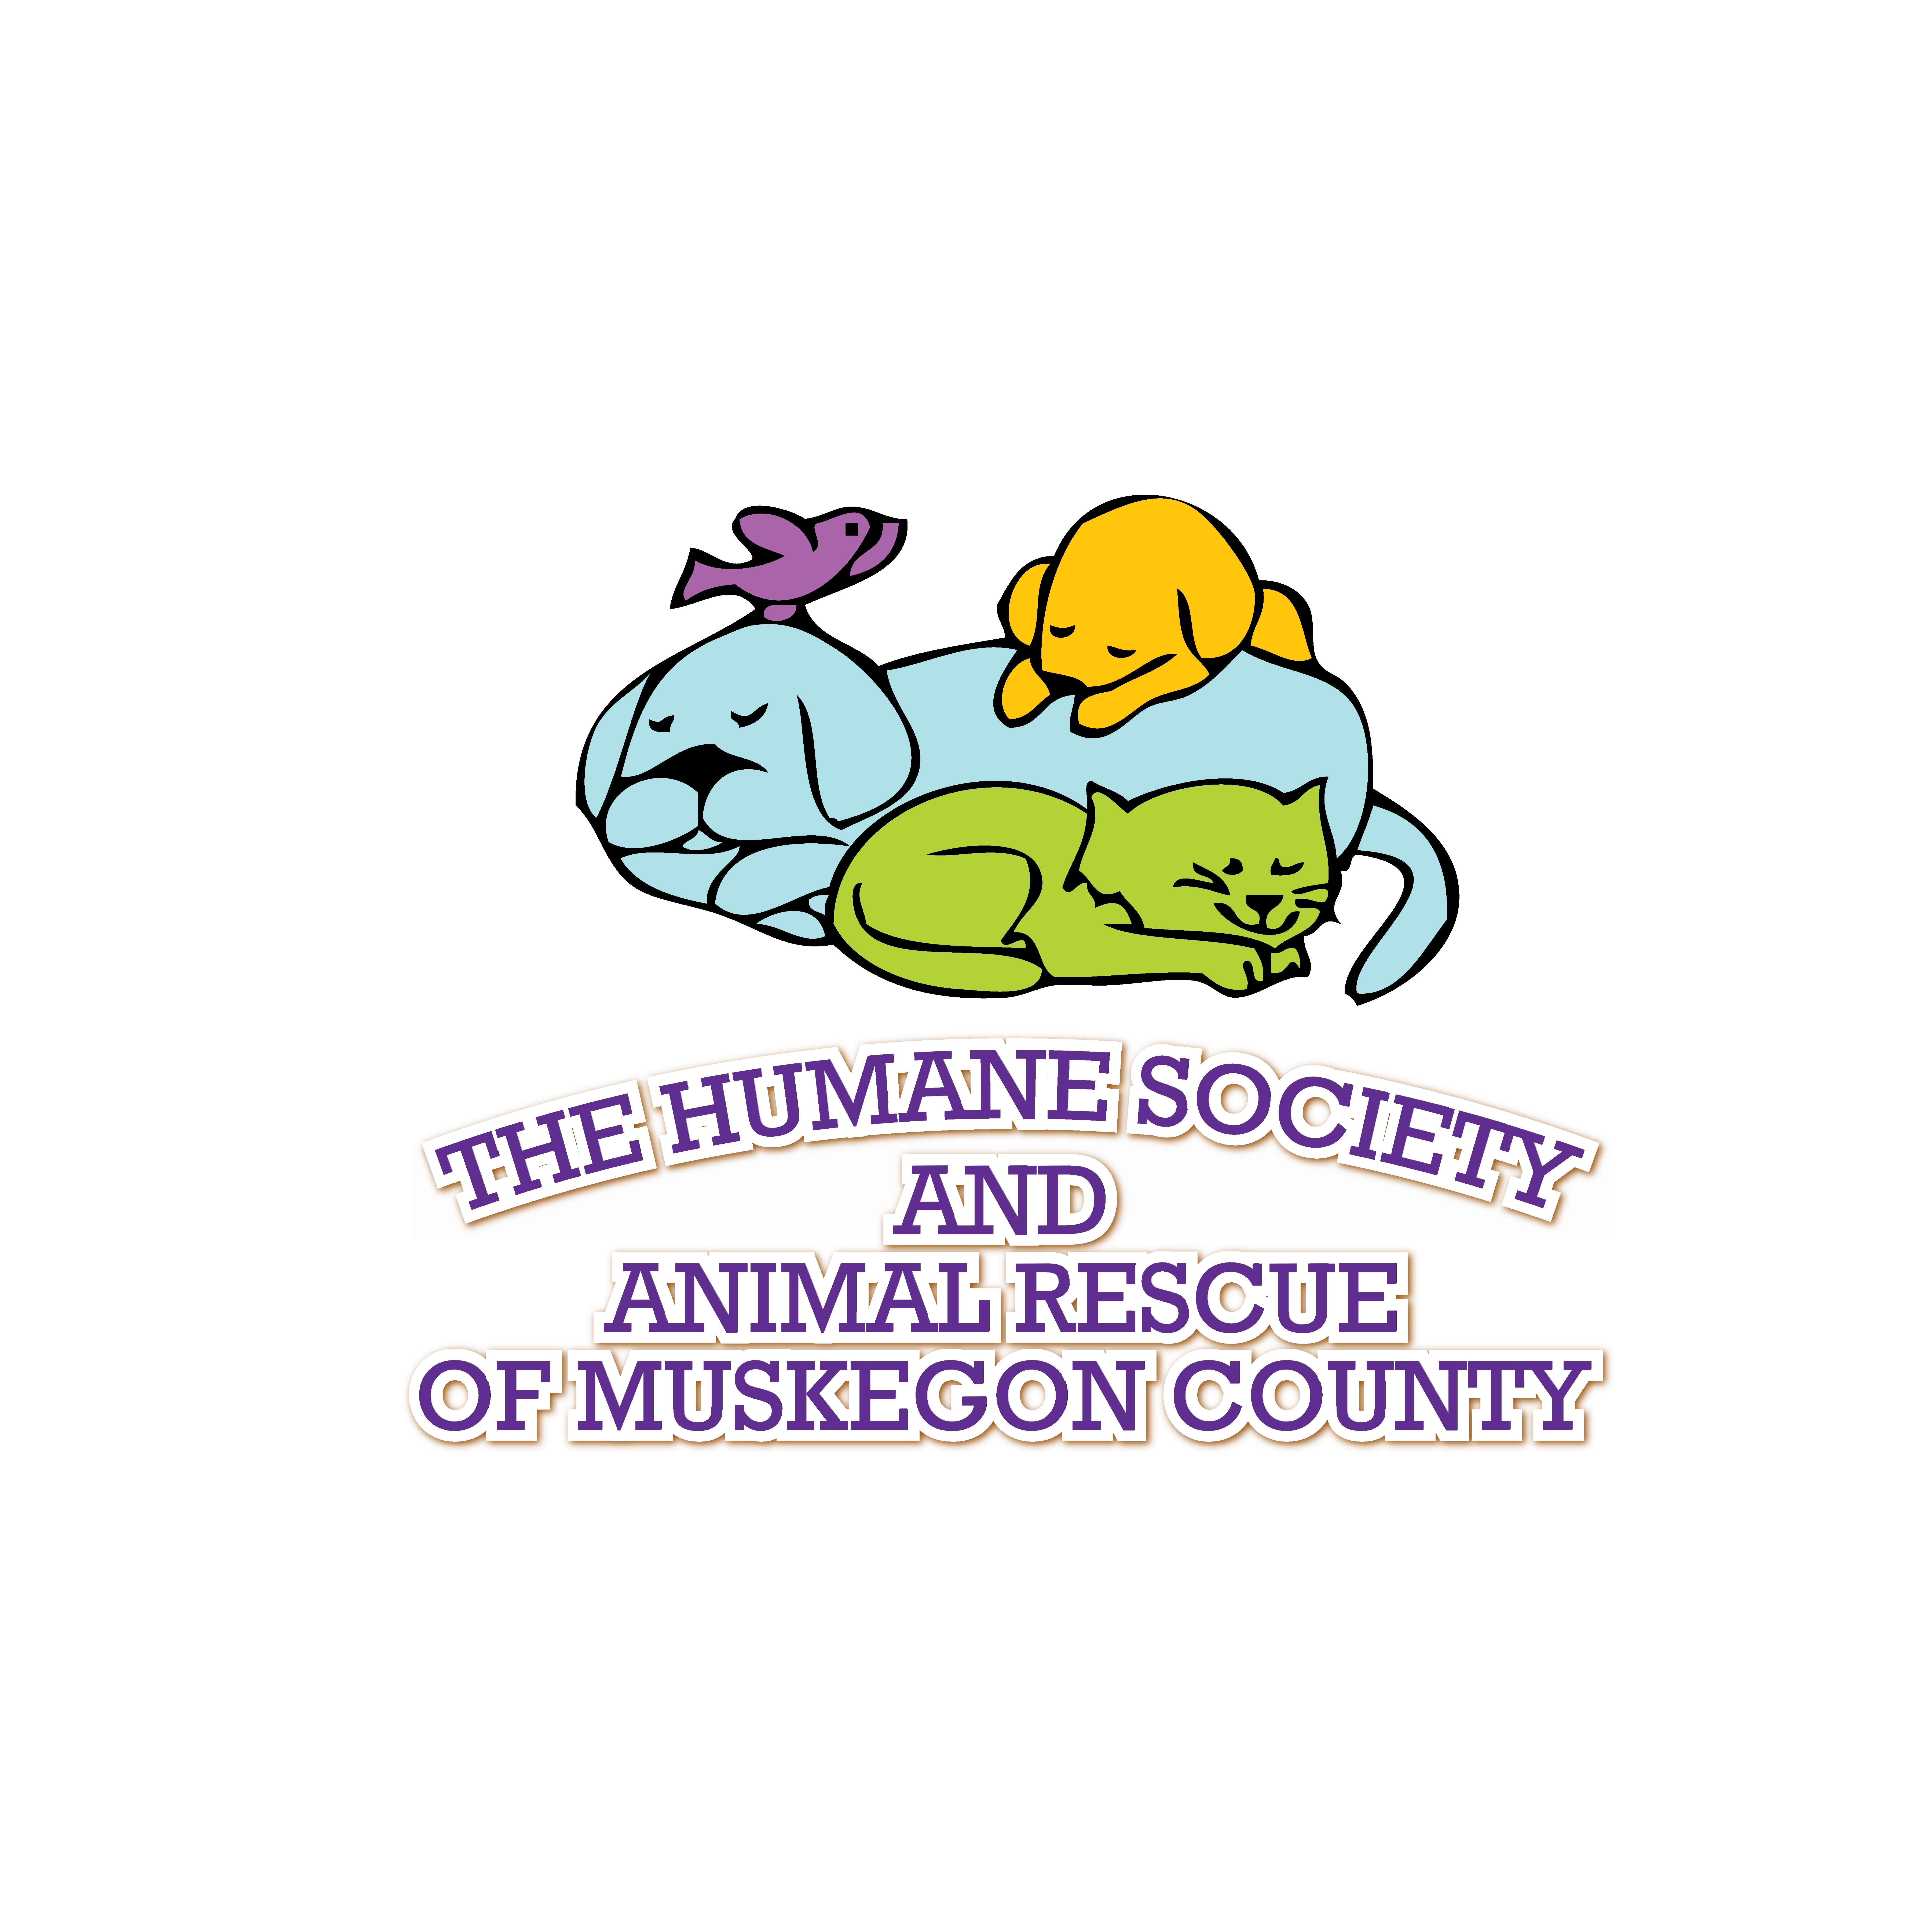 Humane Society of Muskegon County